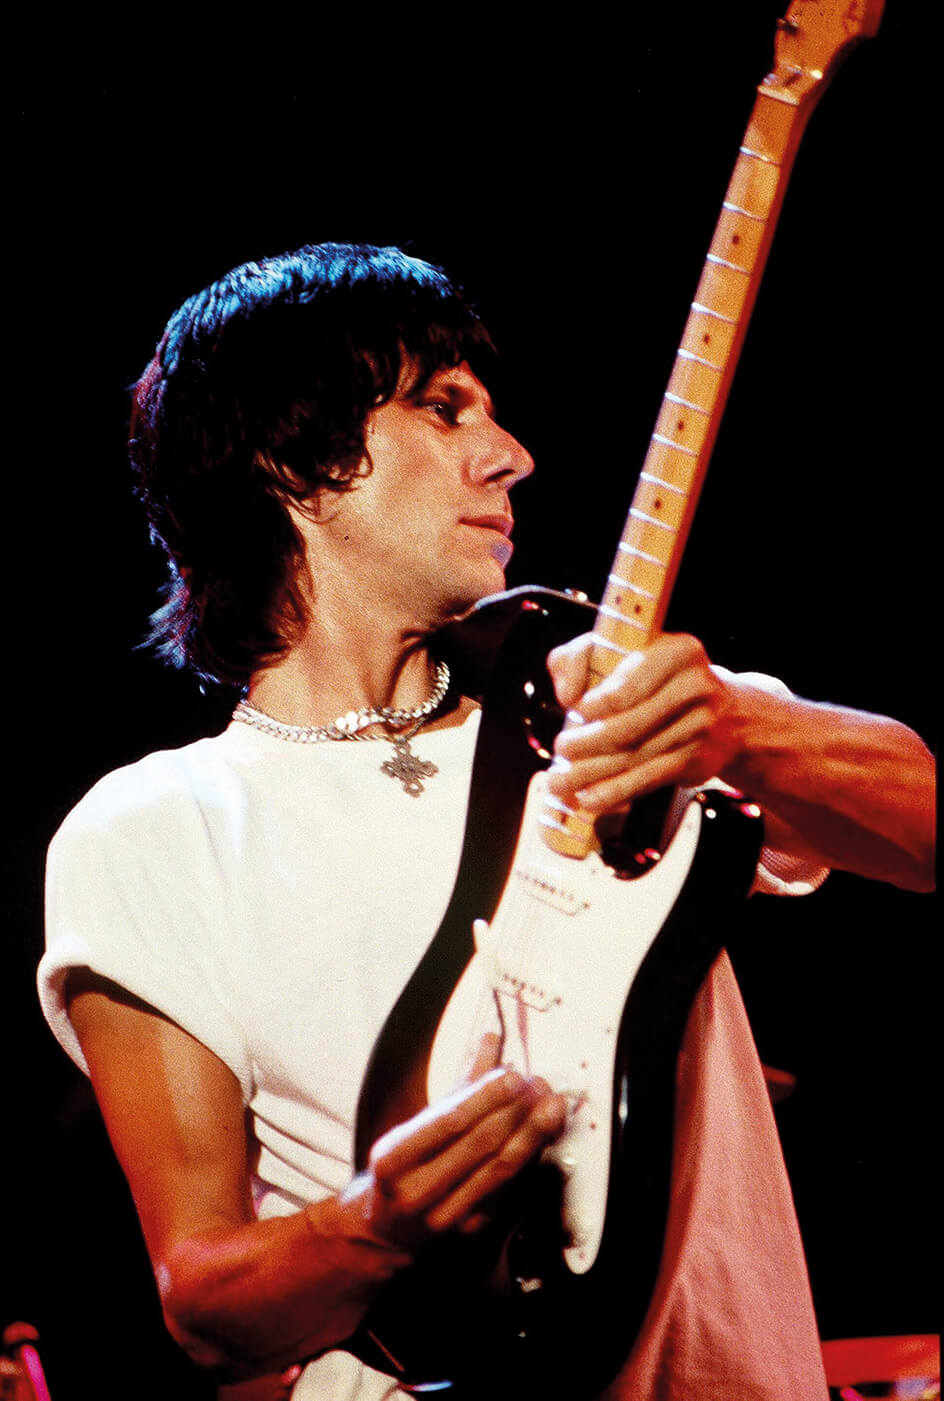 Jeff Beck with a Fender Stratocaster